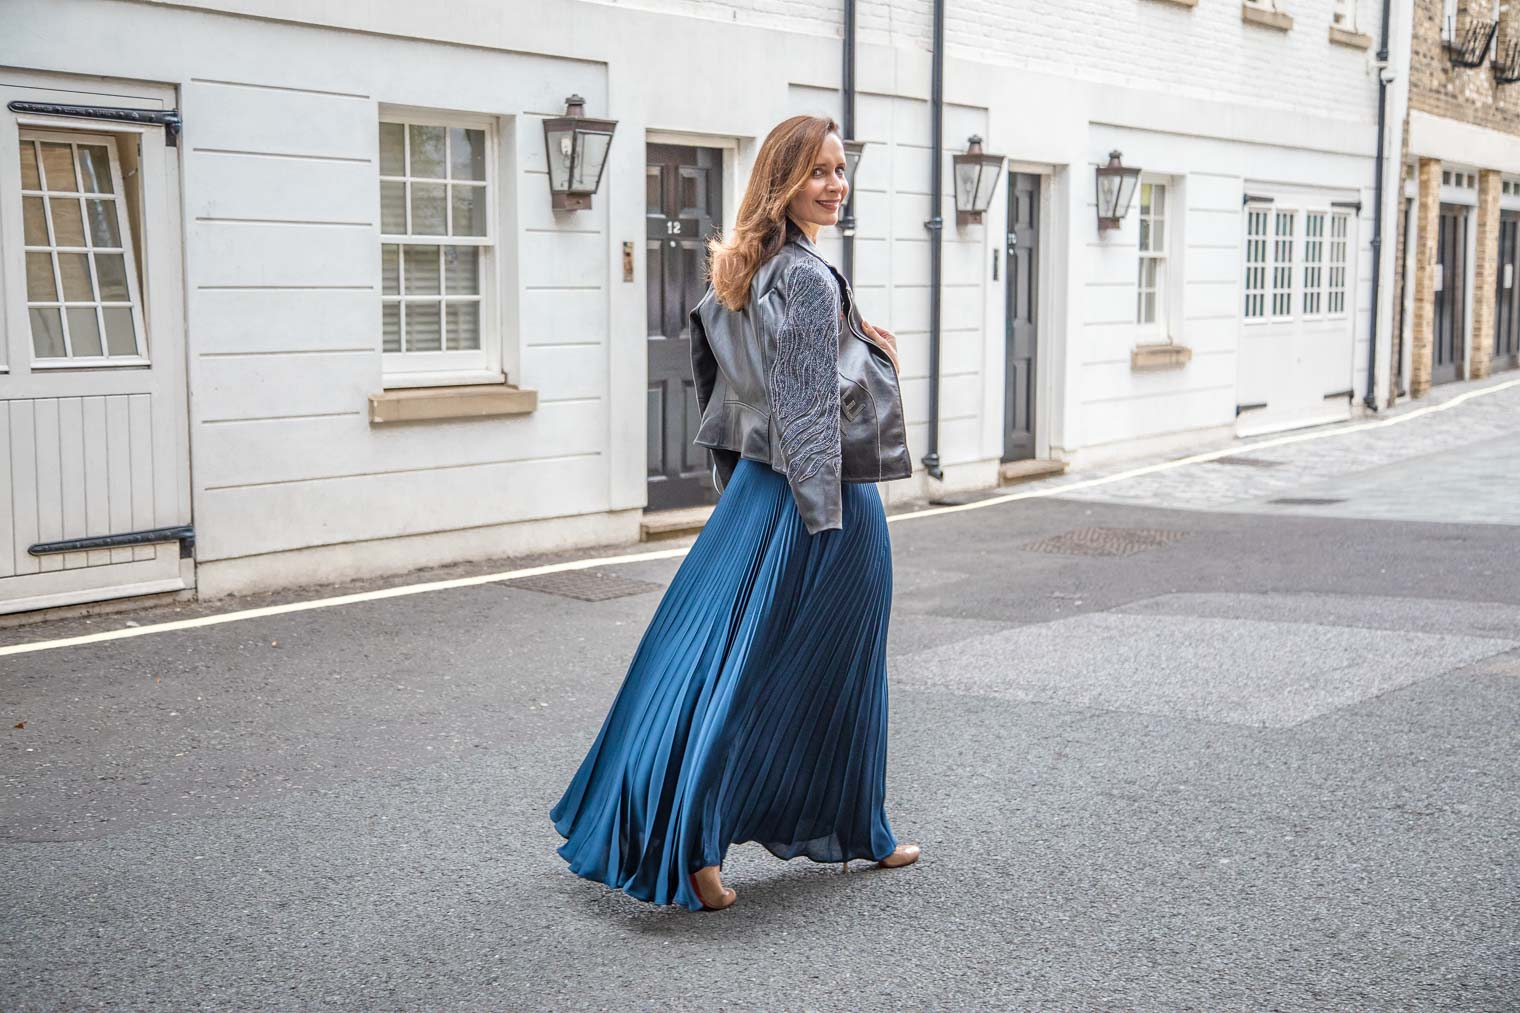 Petra from Chic Journal wearing pleated maxi skirt by Tara Jarmon